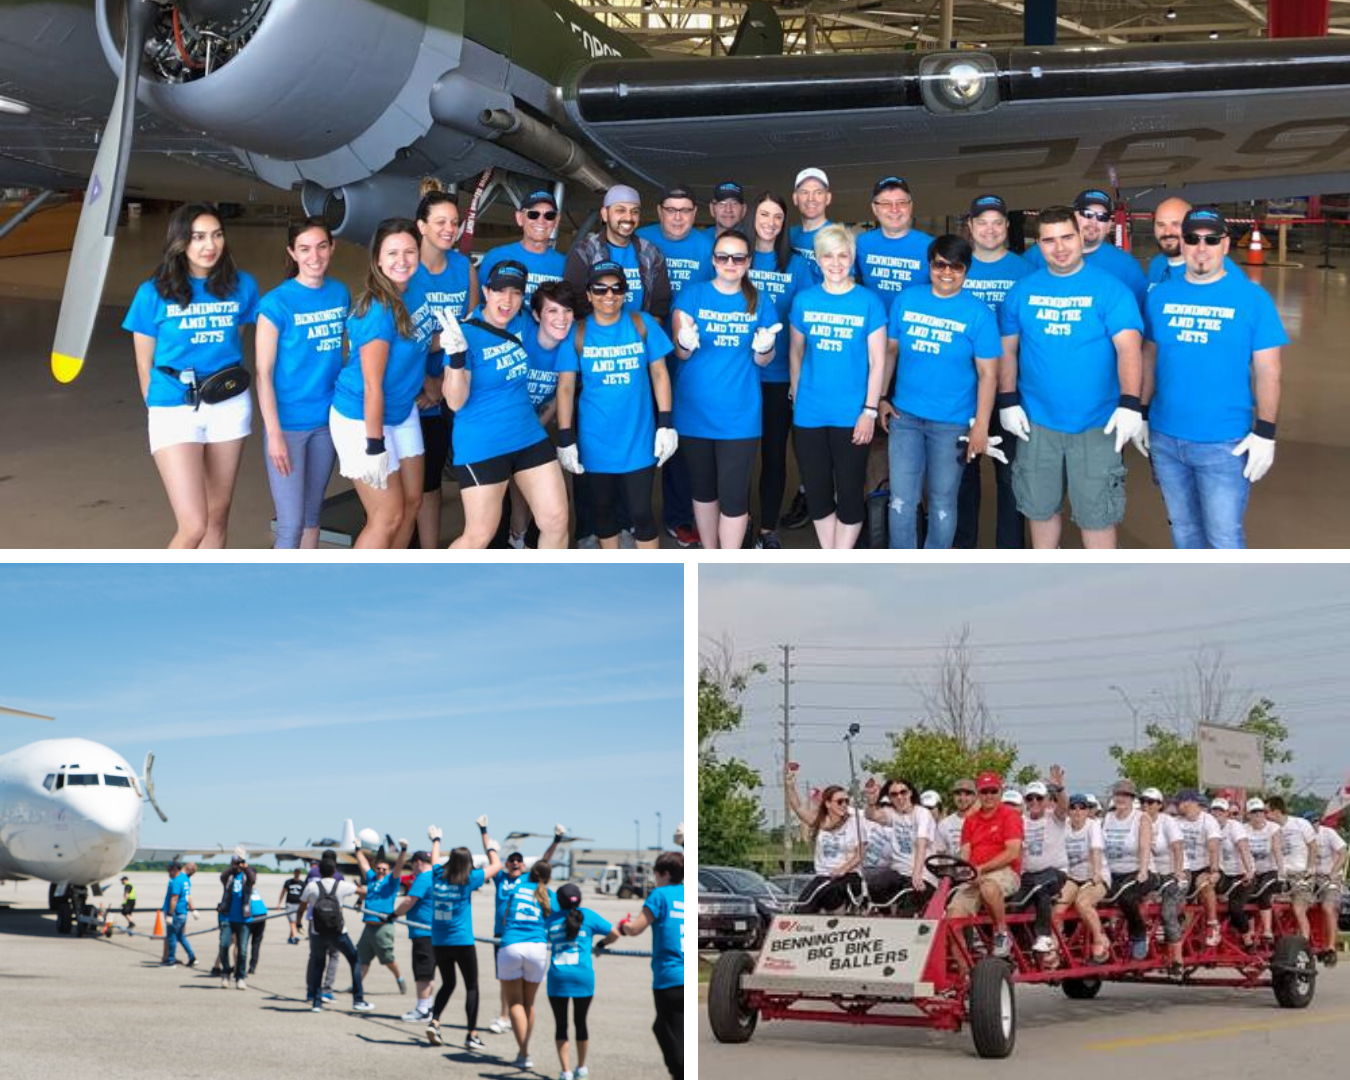 Three pictures: | Top | Bennington and the Jets team members pose with a plane behind them at the John C. Munro Hamilton International Airport prior to pulling a plane in support of McMaster Children's Hospital. | Bottom, left | The team that just pulled a plane are on the tarmac with one hand on the rope and the other arm up in celebration of their feat. That plane was heavy! | Bottom, right | All aboard! Thirty Bennington team members are packed on to a giant red bike, smiling and waving to the camera. This ride was in support of the Heart and Stroke's Big Bike Race.